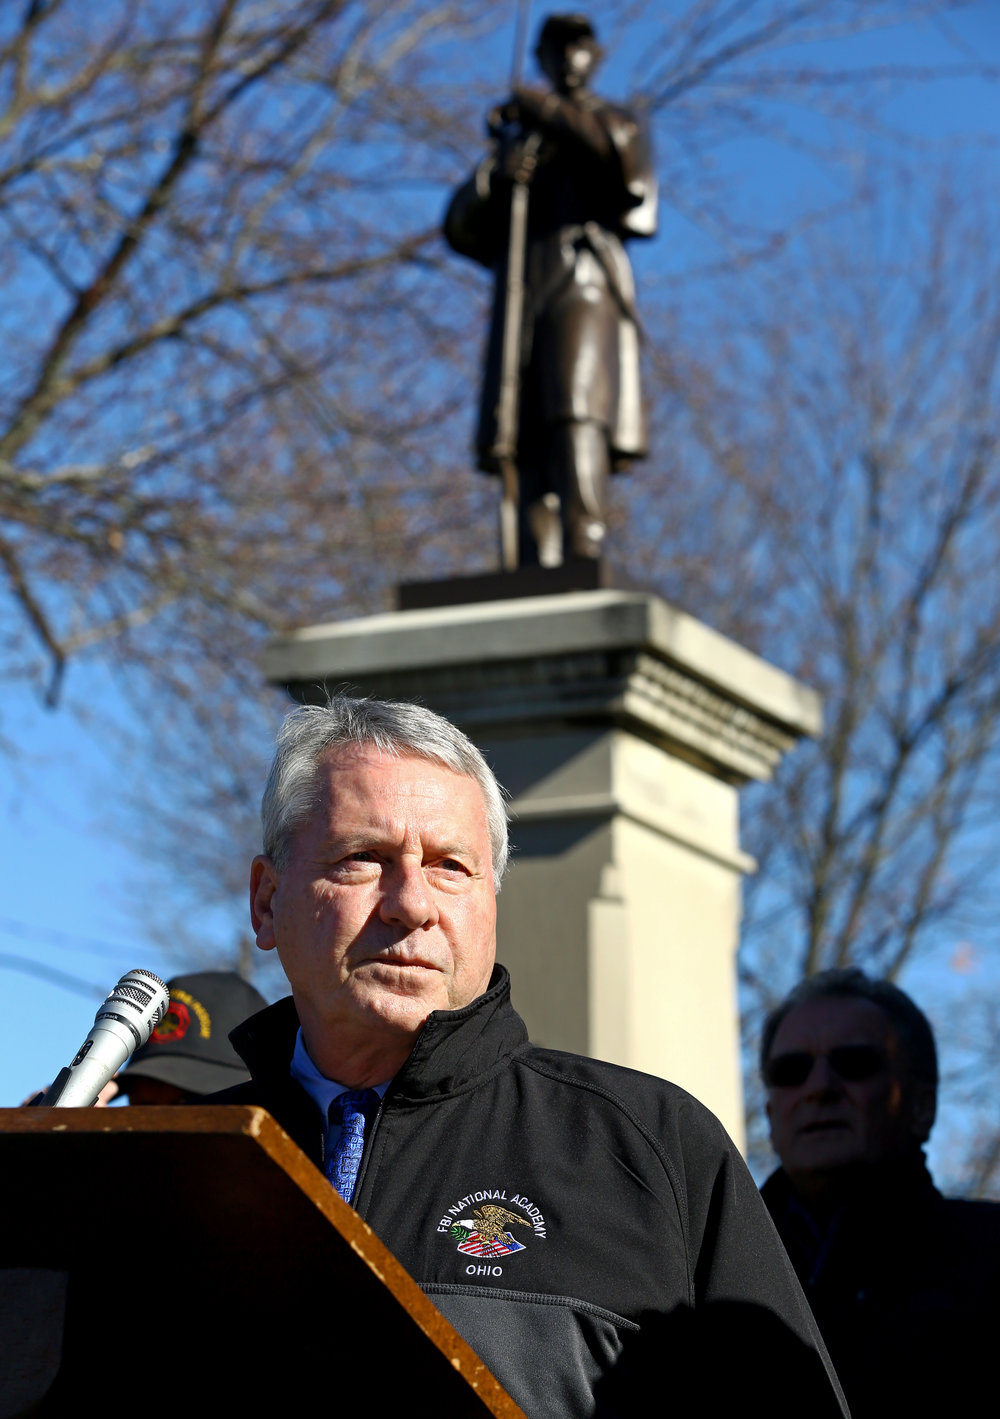 Mayor of Whitehouse Don Atkinson addresses the crowd gathered in Whitehouse Village Park during a re-dedication ceremony for the Soldier Statue in Whitehouse, Oh. on Saturday, Nov. 12, 2016. The statue originally dedicated on July 4, 1900, was recently removed from the base to be restored and refinished by McKay Lodge Fine Arts Conservatory.